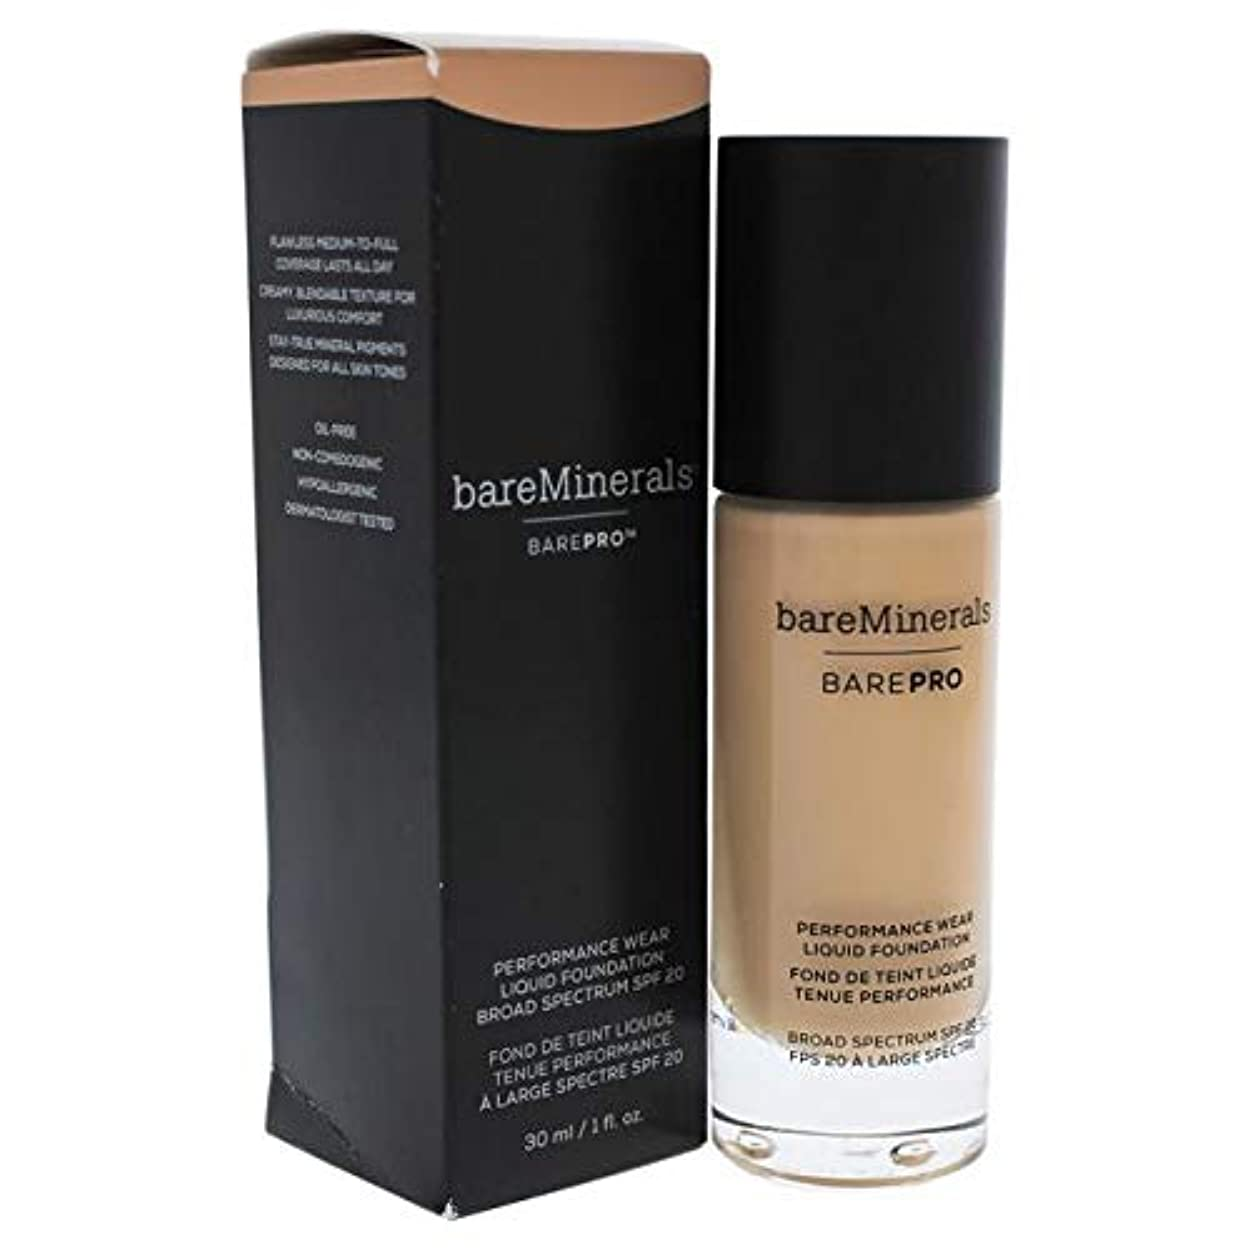 遺棄された君主懸念ベアミネラル BarePro Performance Wear Liquid Foundation SPF20 - # 10 Cool Beige 30ml/1oz並行輸入品